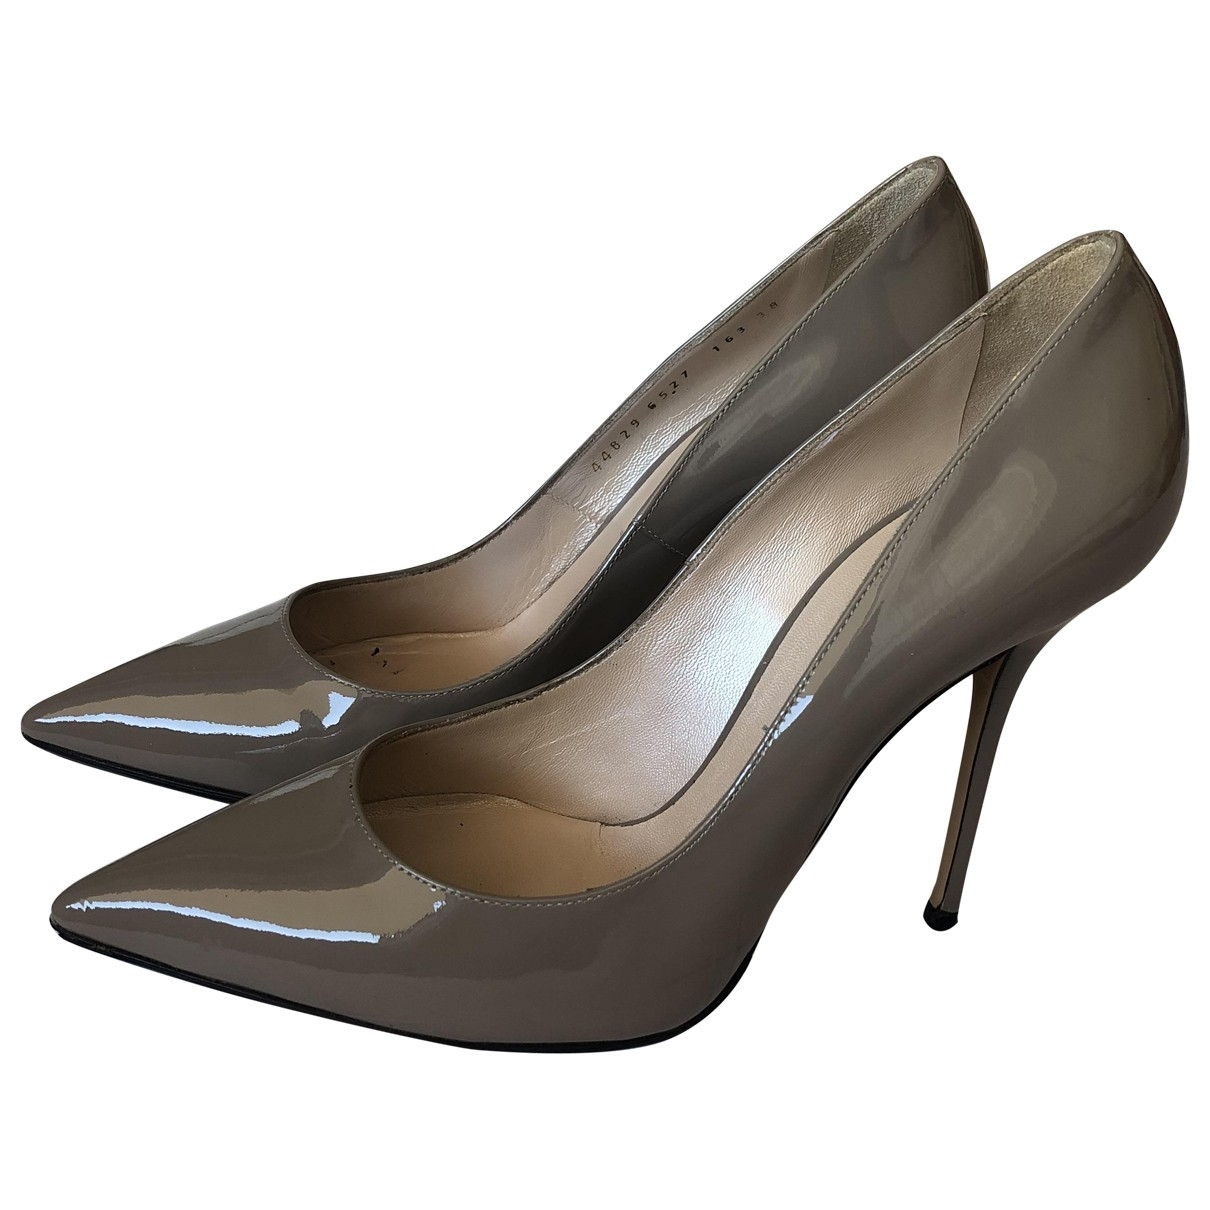 Casadei \N Grey Patent leather Heels for Women 38 EU